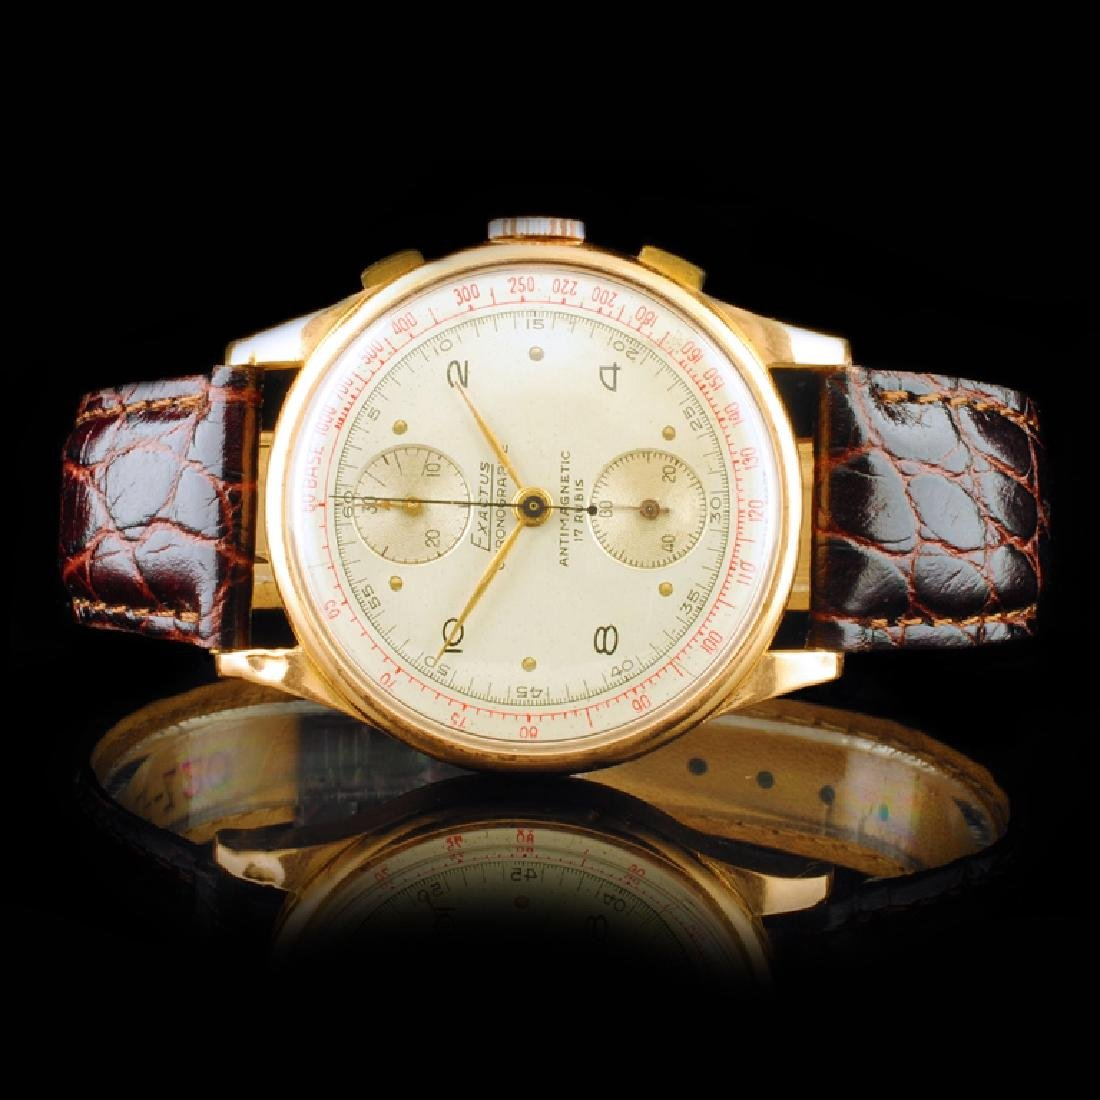 EXACTUS 18K Rose Gold 36mm Chronograph Watch